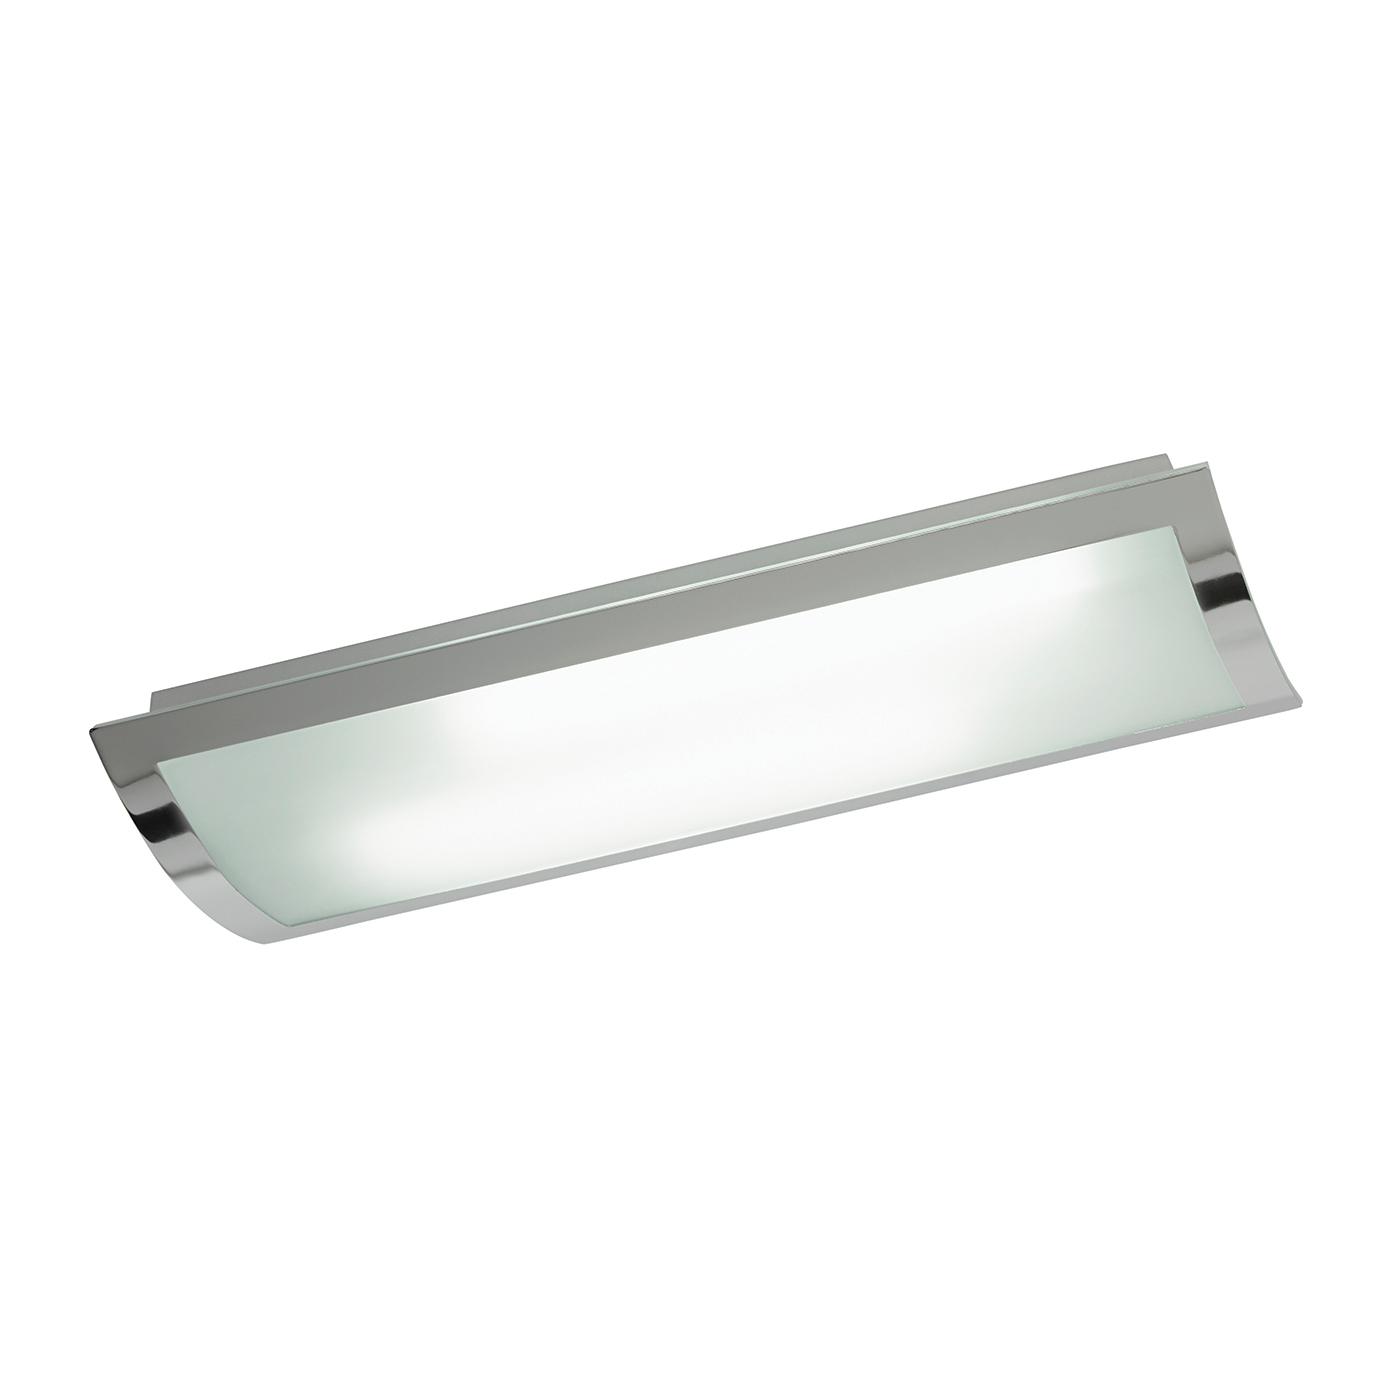 Endon Bay 675mm rectangle flush ceiling light HF 36W Chrome effect frosted glass